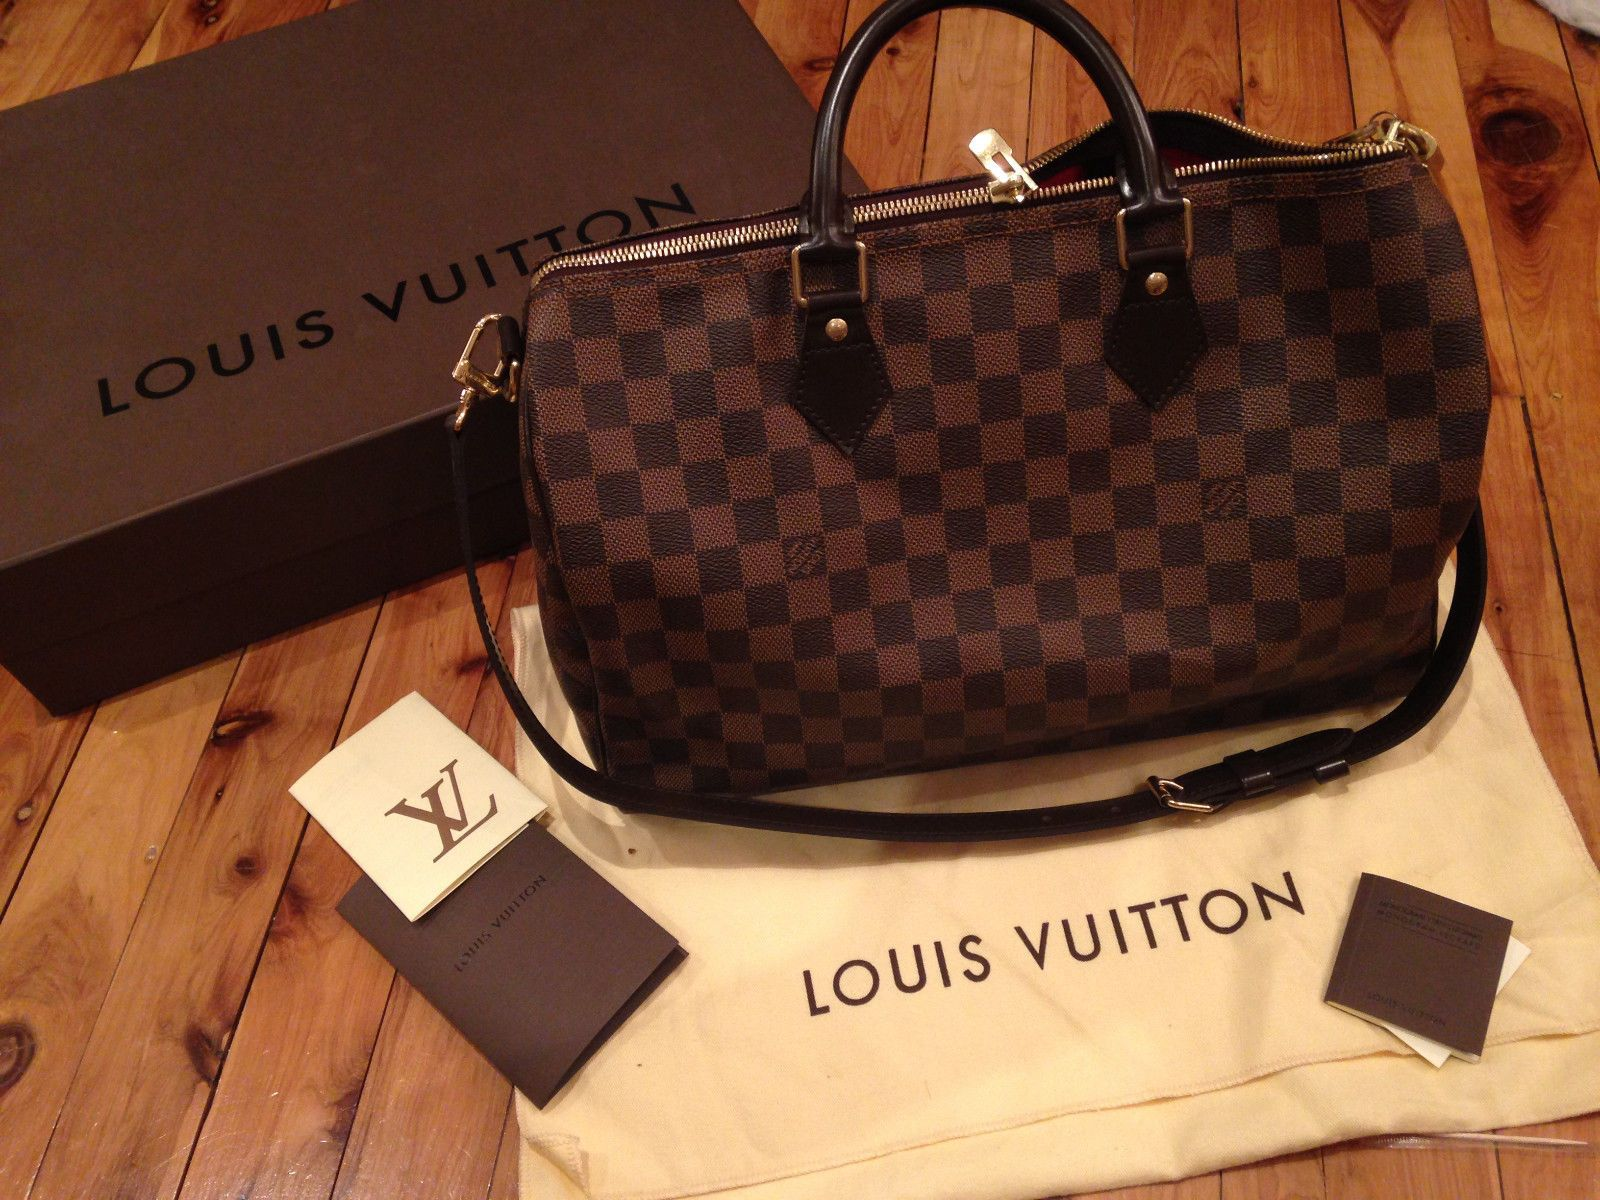 Authentic Louis Vuitton Speedy Bandouliere 35 Damier in Liverpool, NSW    eBay 59782d39c37